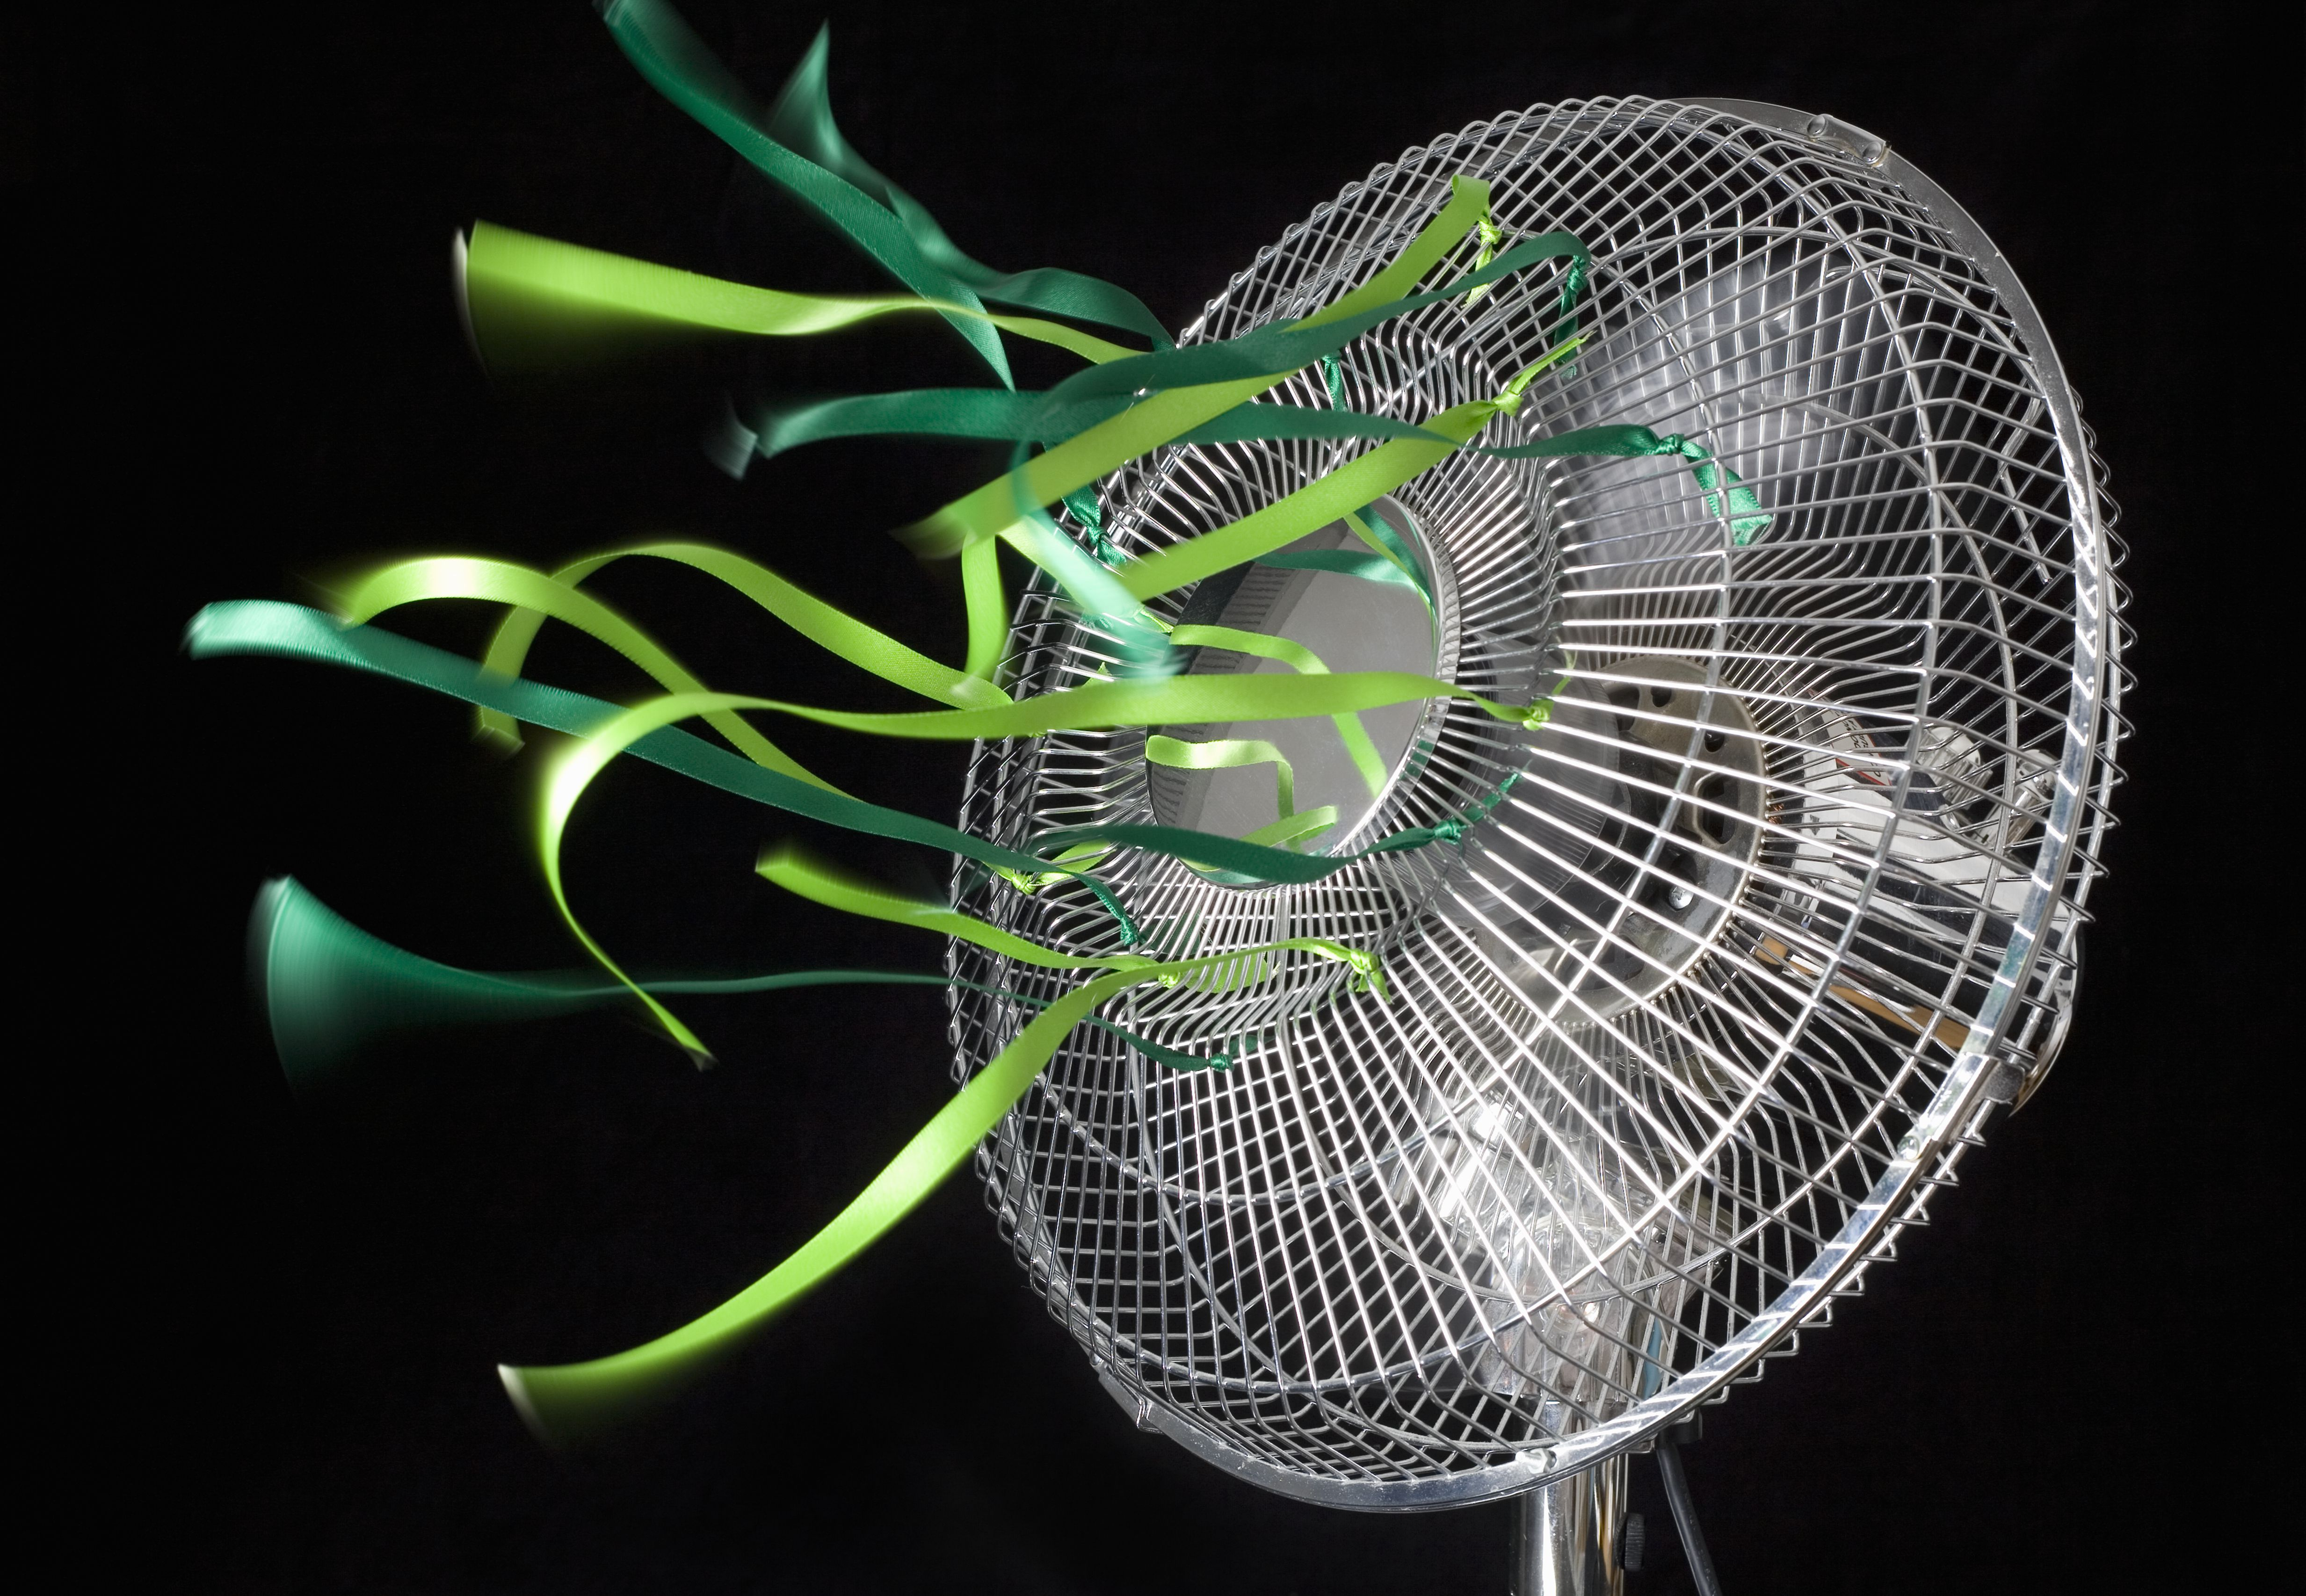 Green ribbons flying on an electrical fan